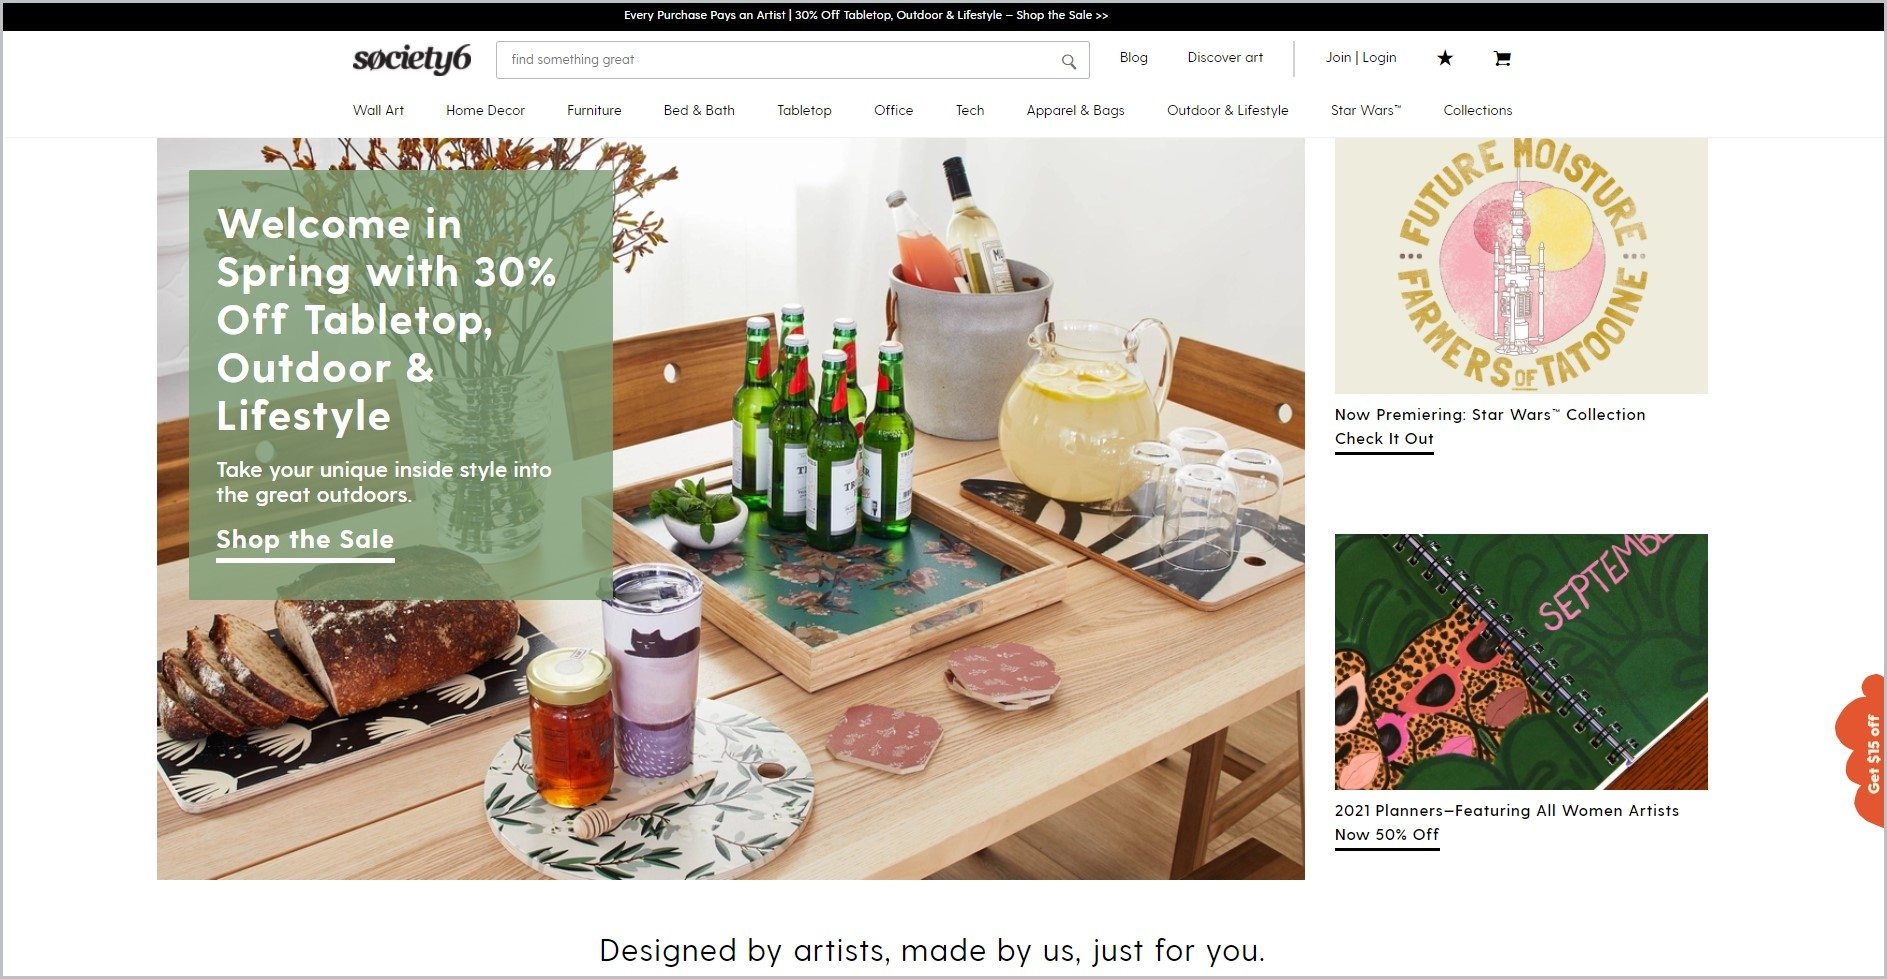 screenshot of Society6 homepage with dark grey announcement bar, white header bearing the website's name and main navigation menu, showcasing some of their products